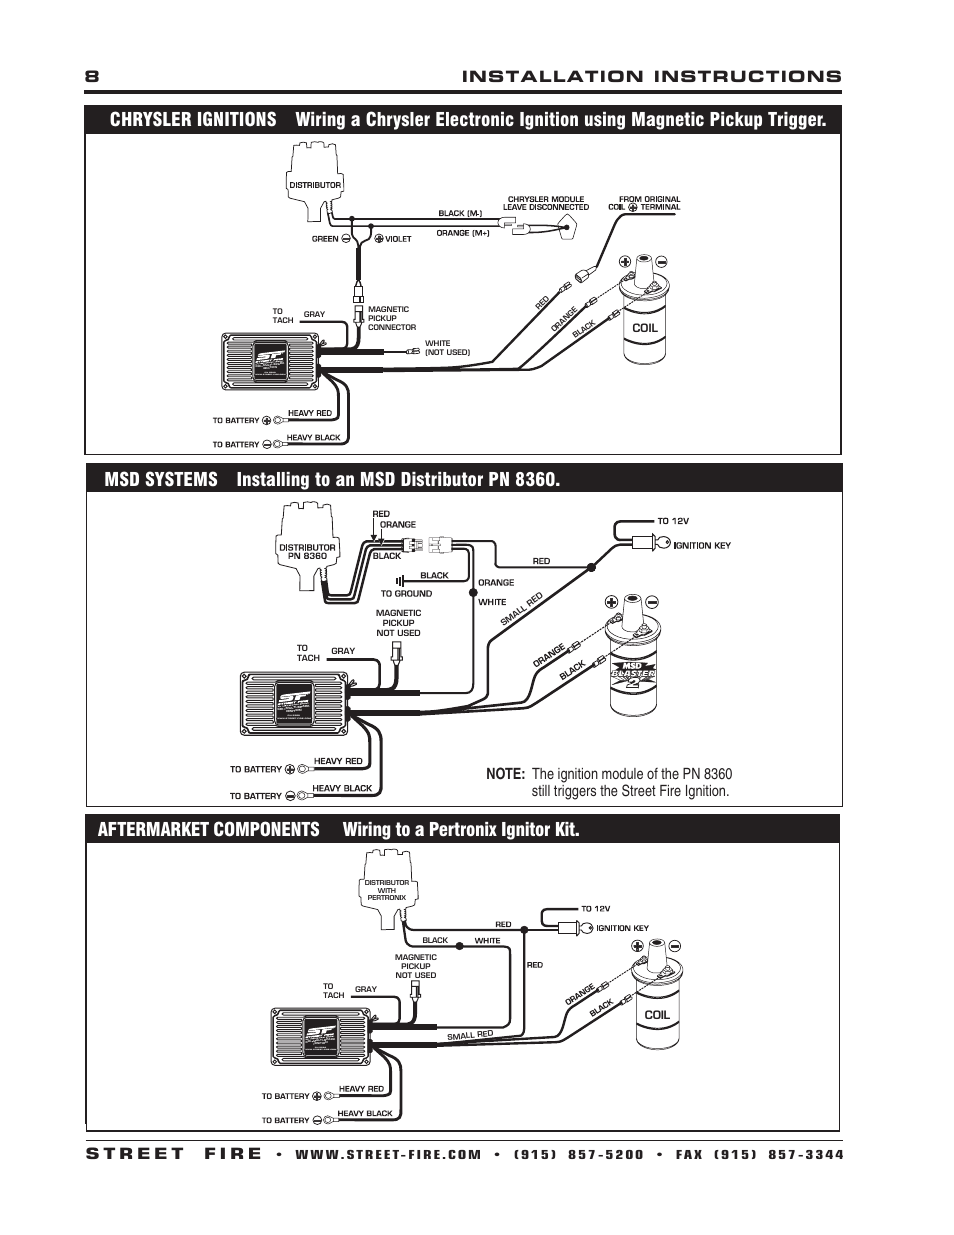 6631 Msd Ignition Wiring Diagrams - Wiring DDiagrams Home clue-copy -  clue-copy.brixiaproart.it | Hvc 6600 Wiring Diagram Ignition |  | Brixia PRO Art